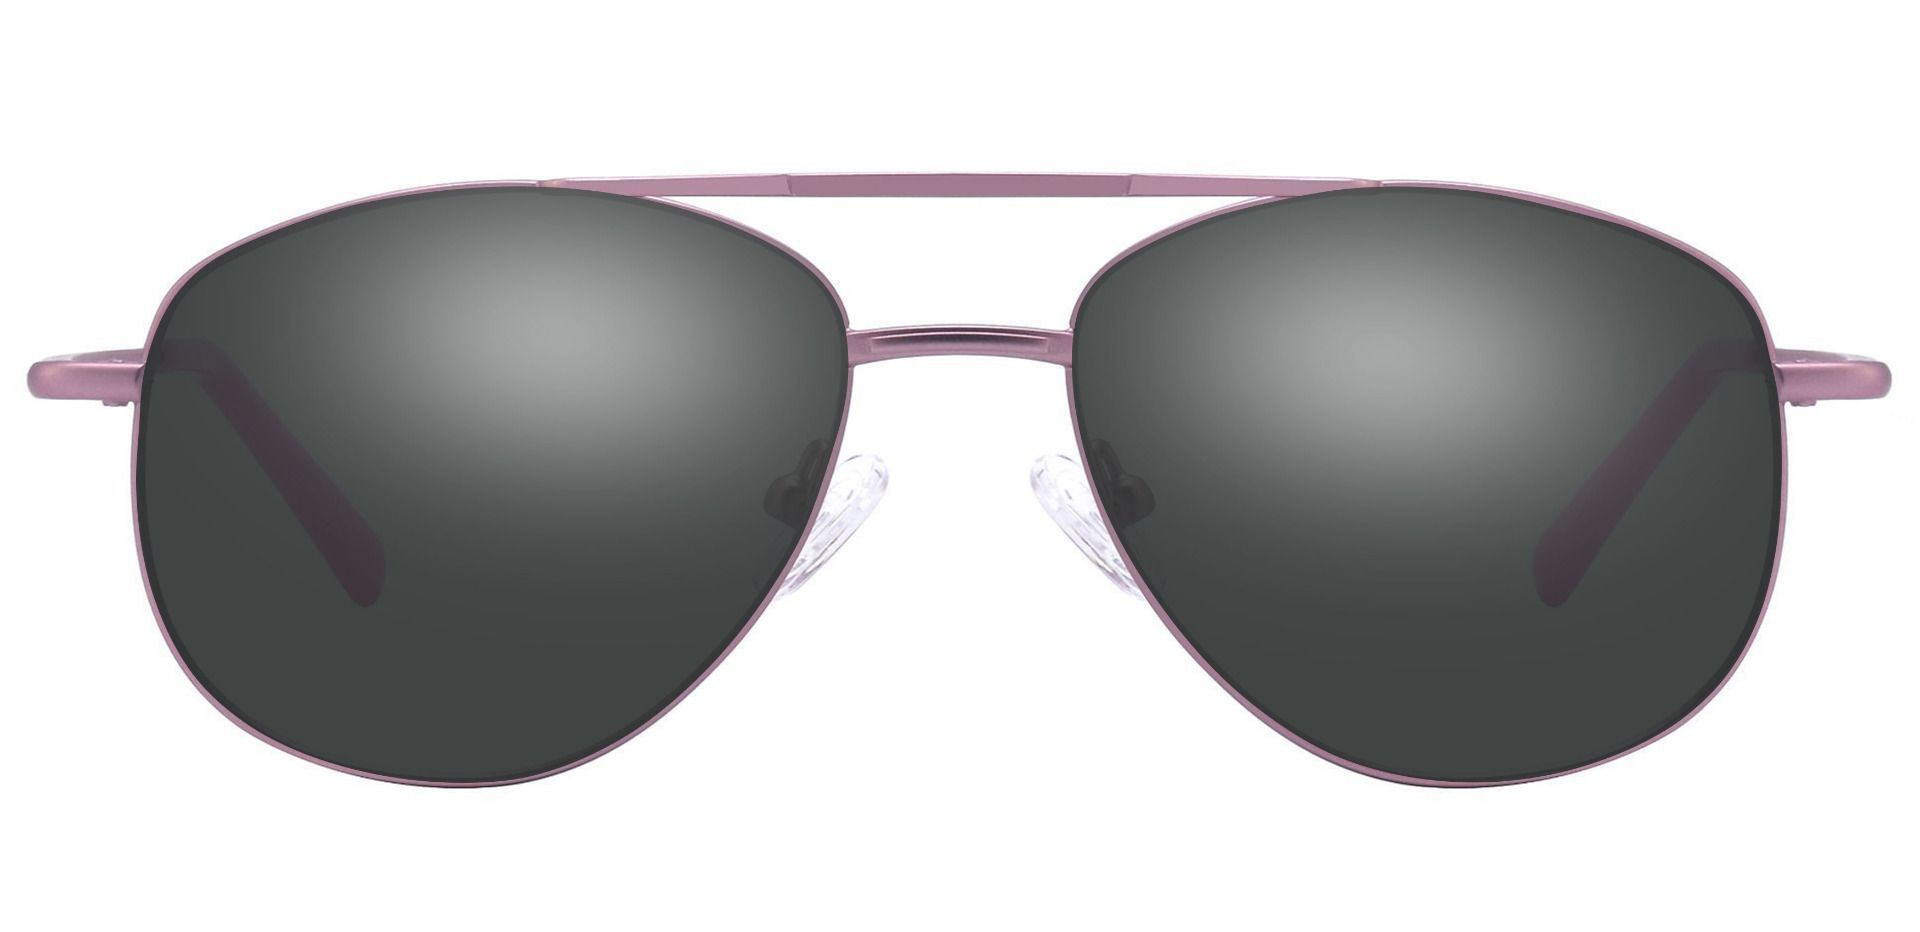 Dwight Aviator Single Vision Sunglasses - Pink Frame With Gray Lenses